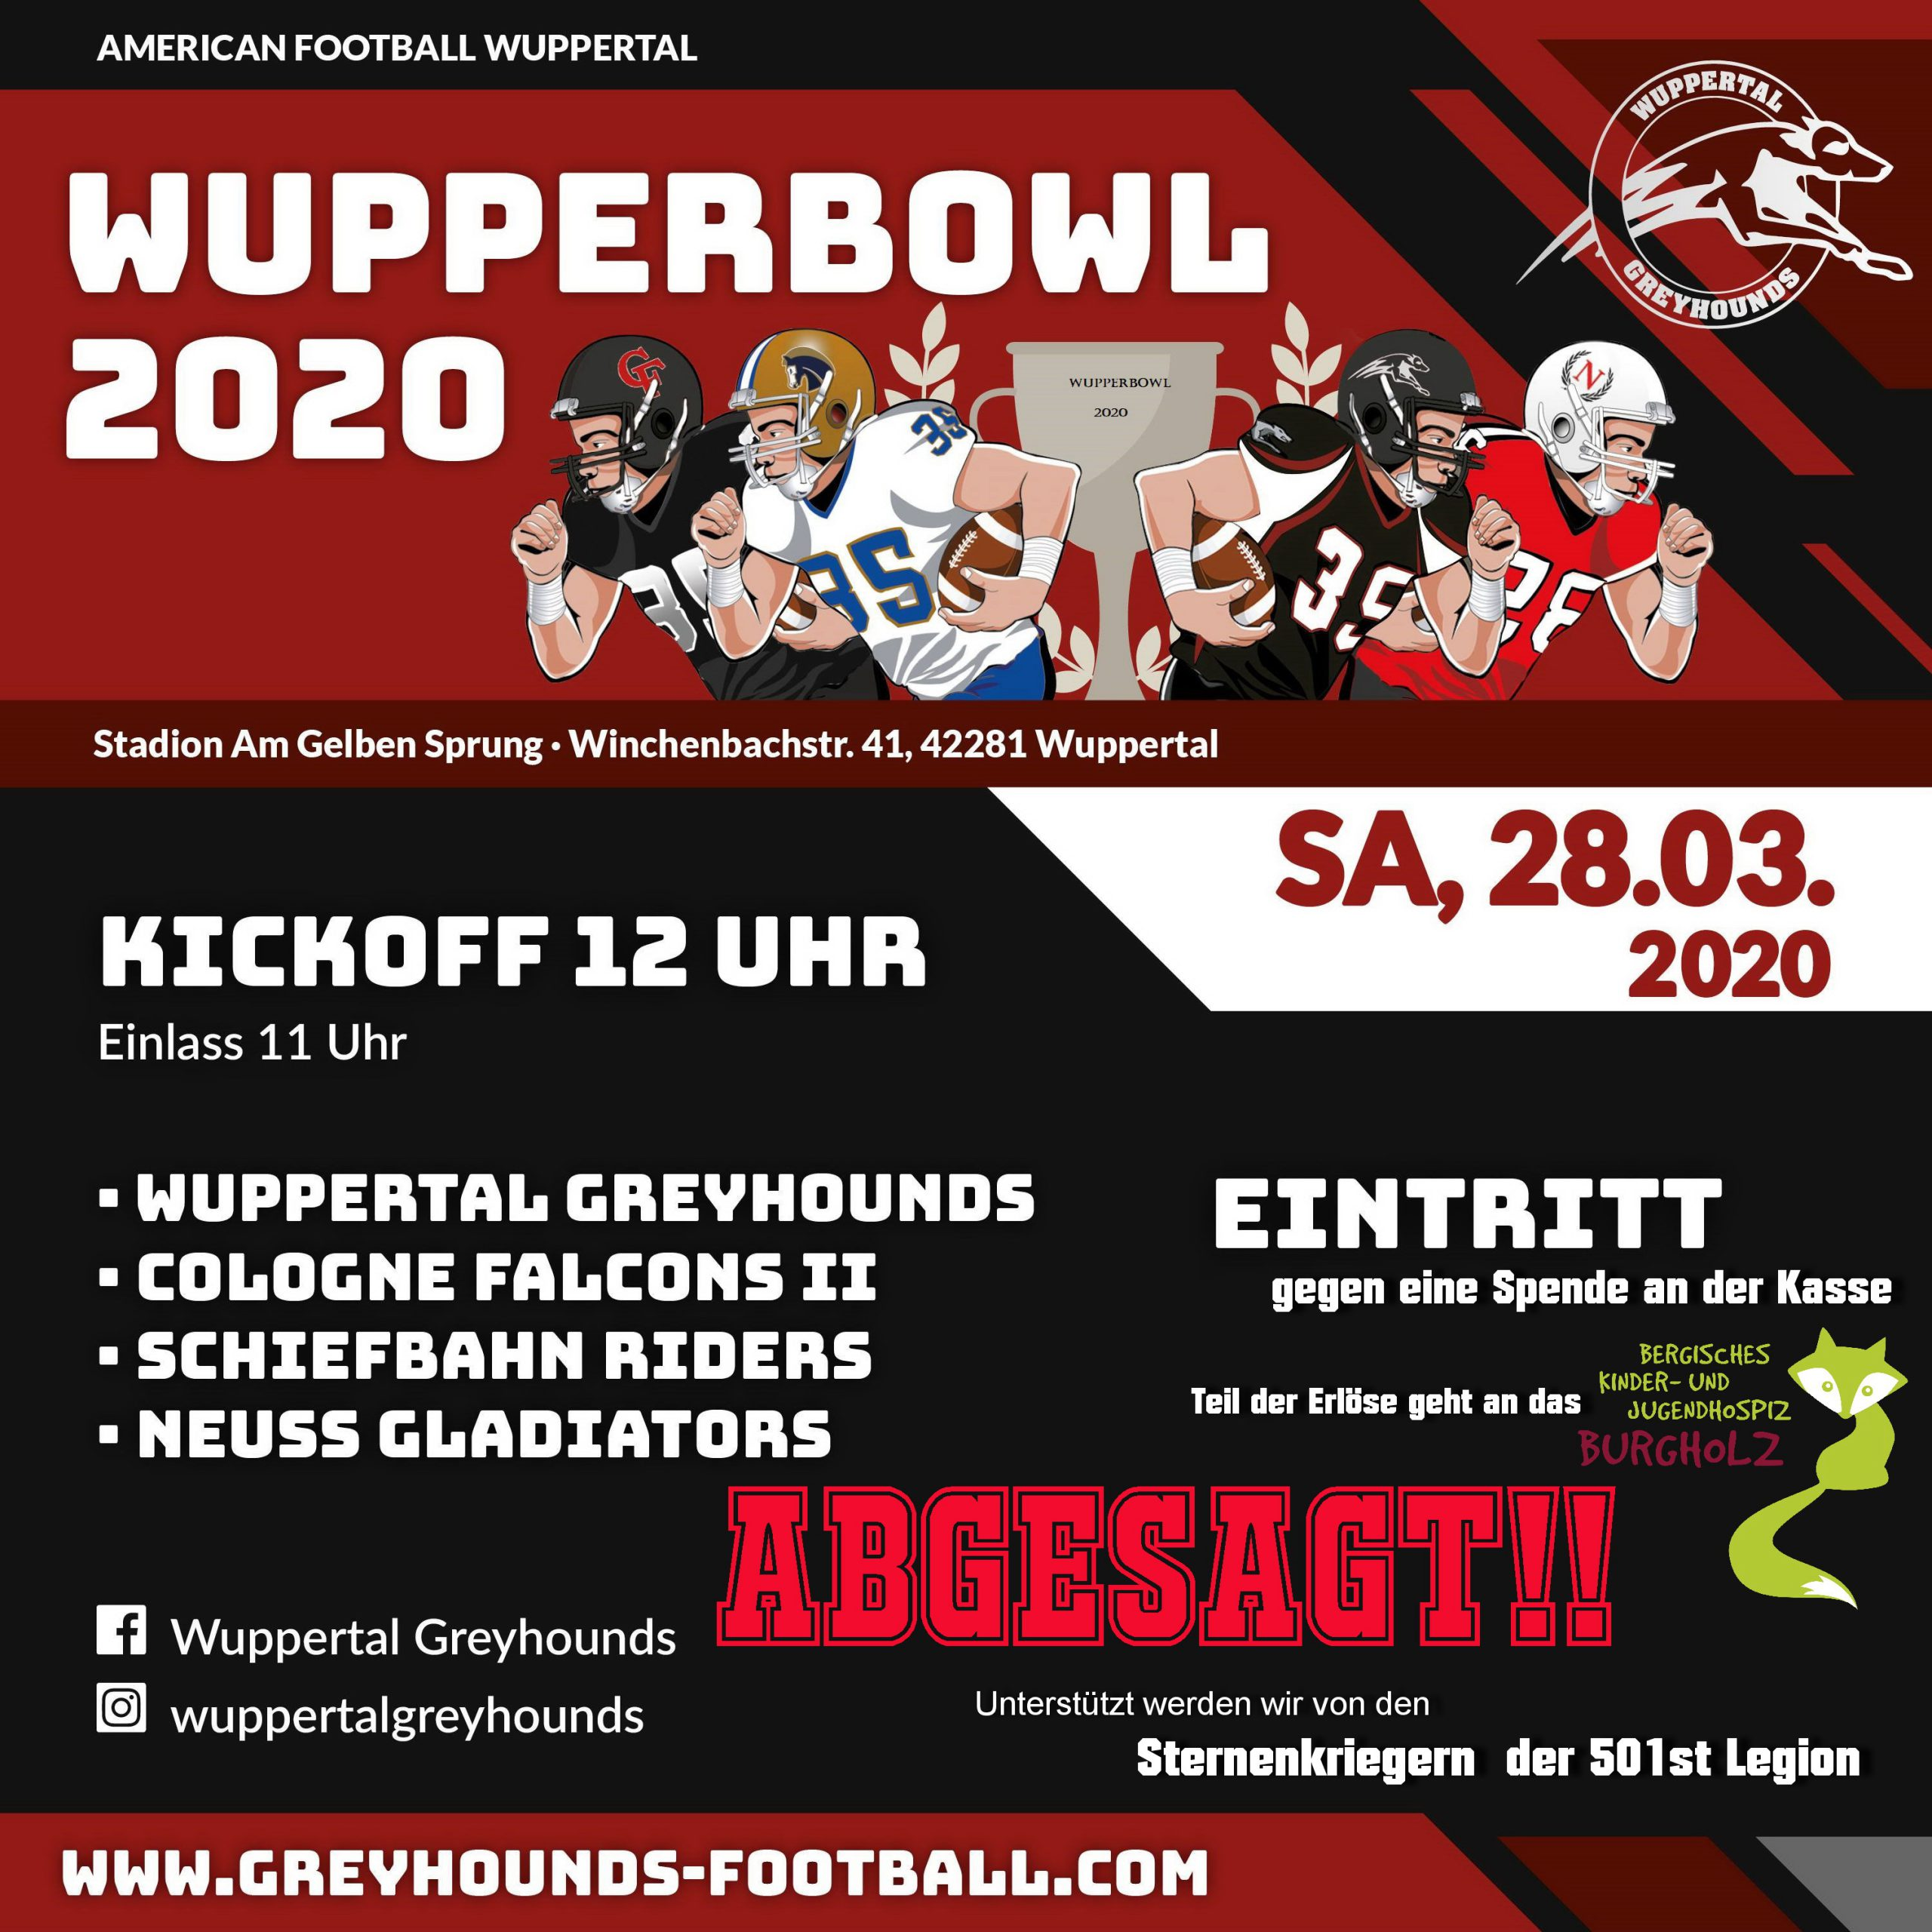 Wupperbowl 2020